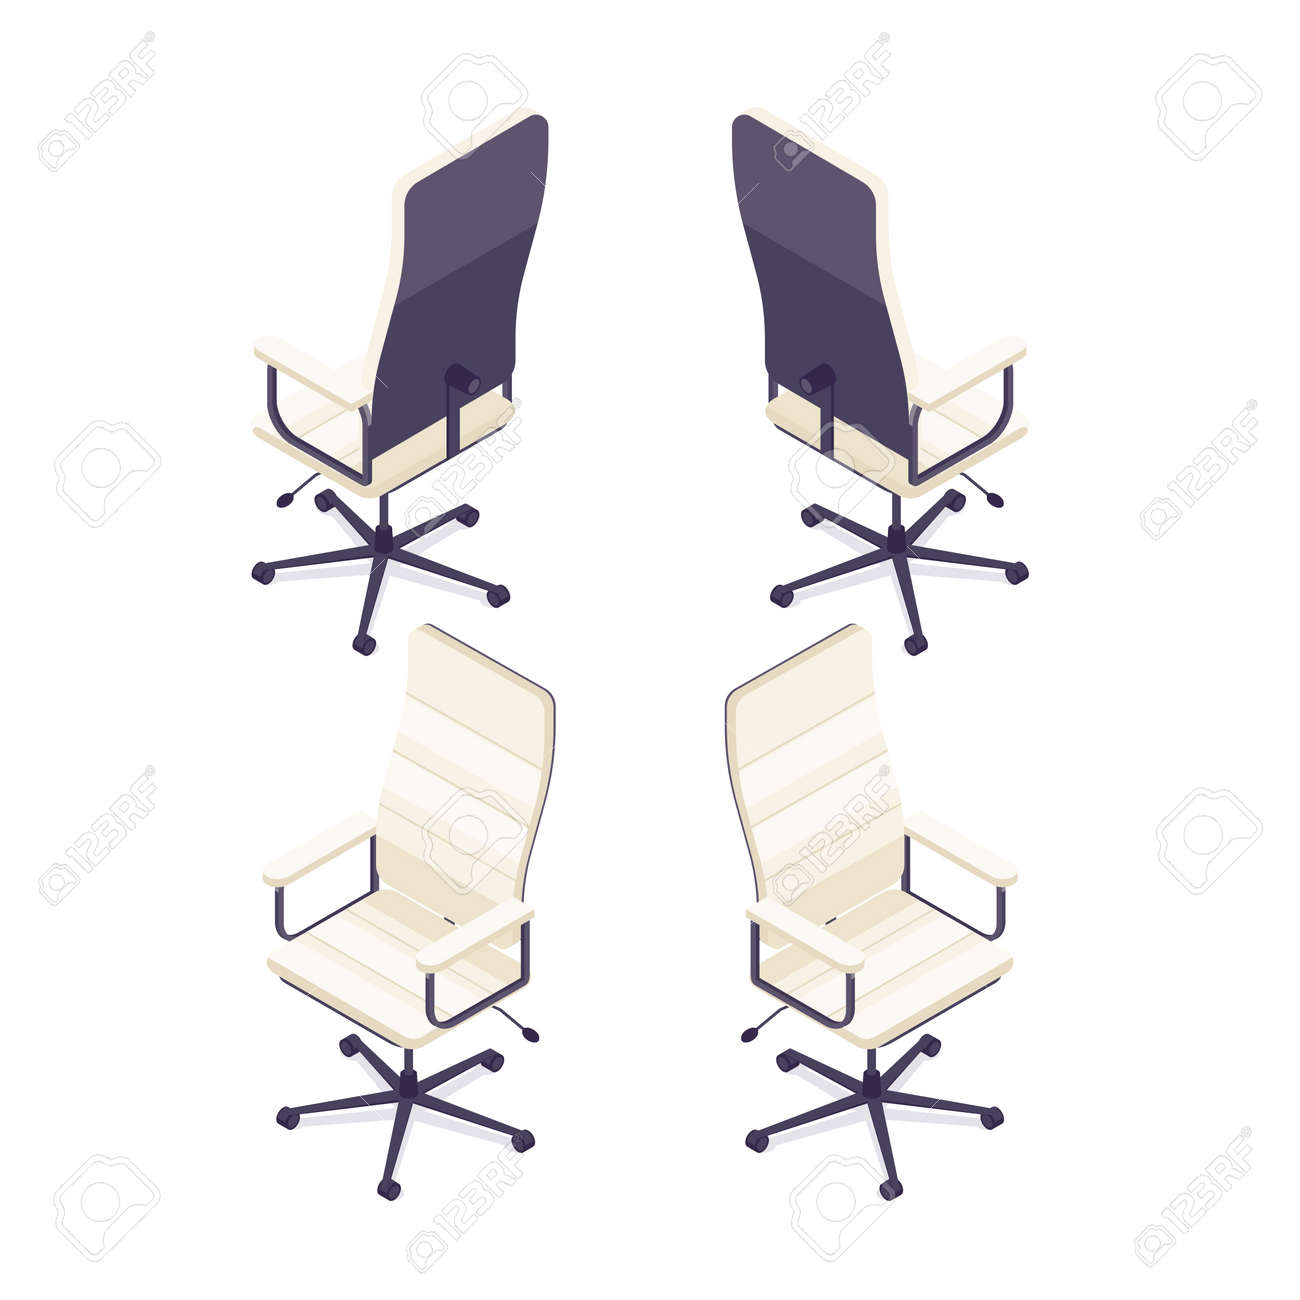 Isometric Computer Chair Isolated On White Background 3d Armchair